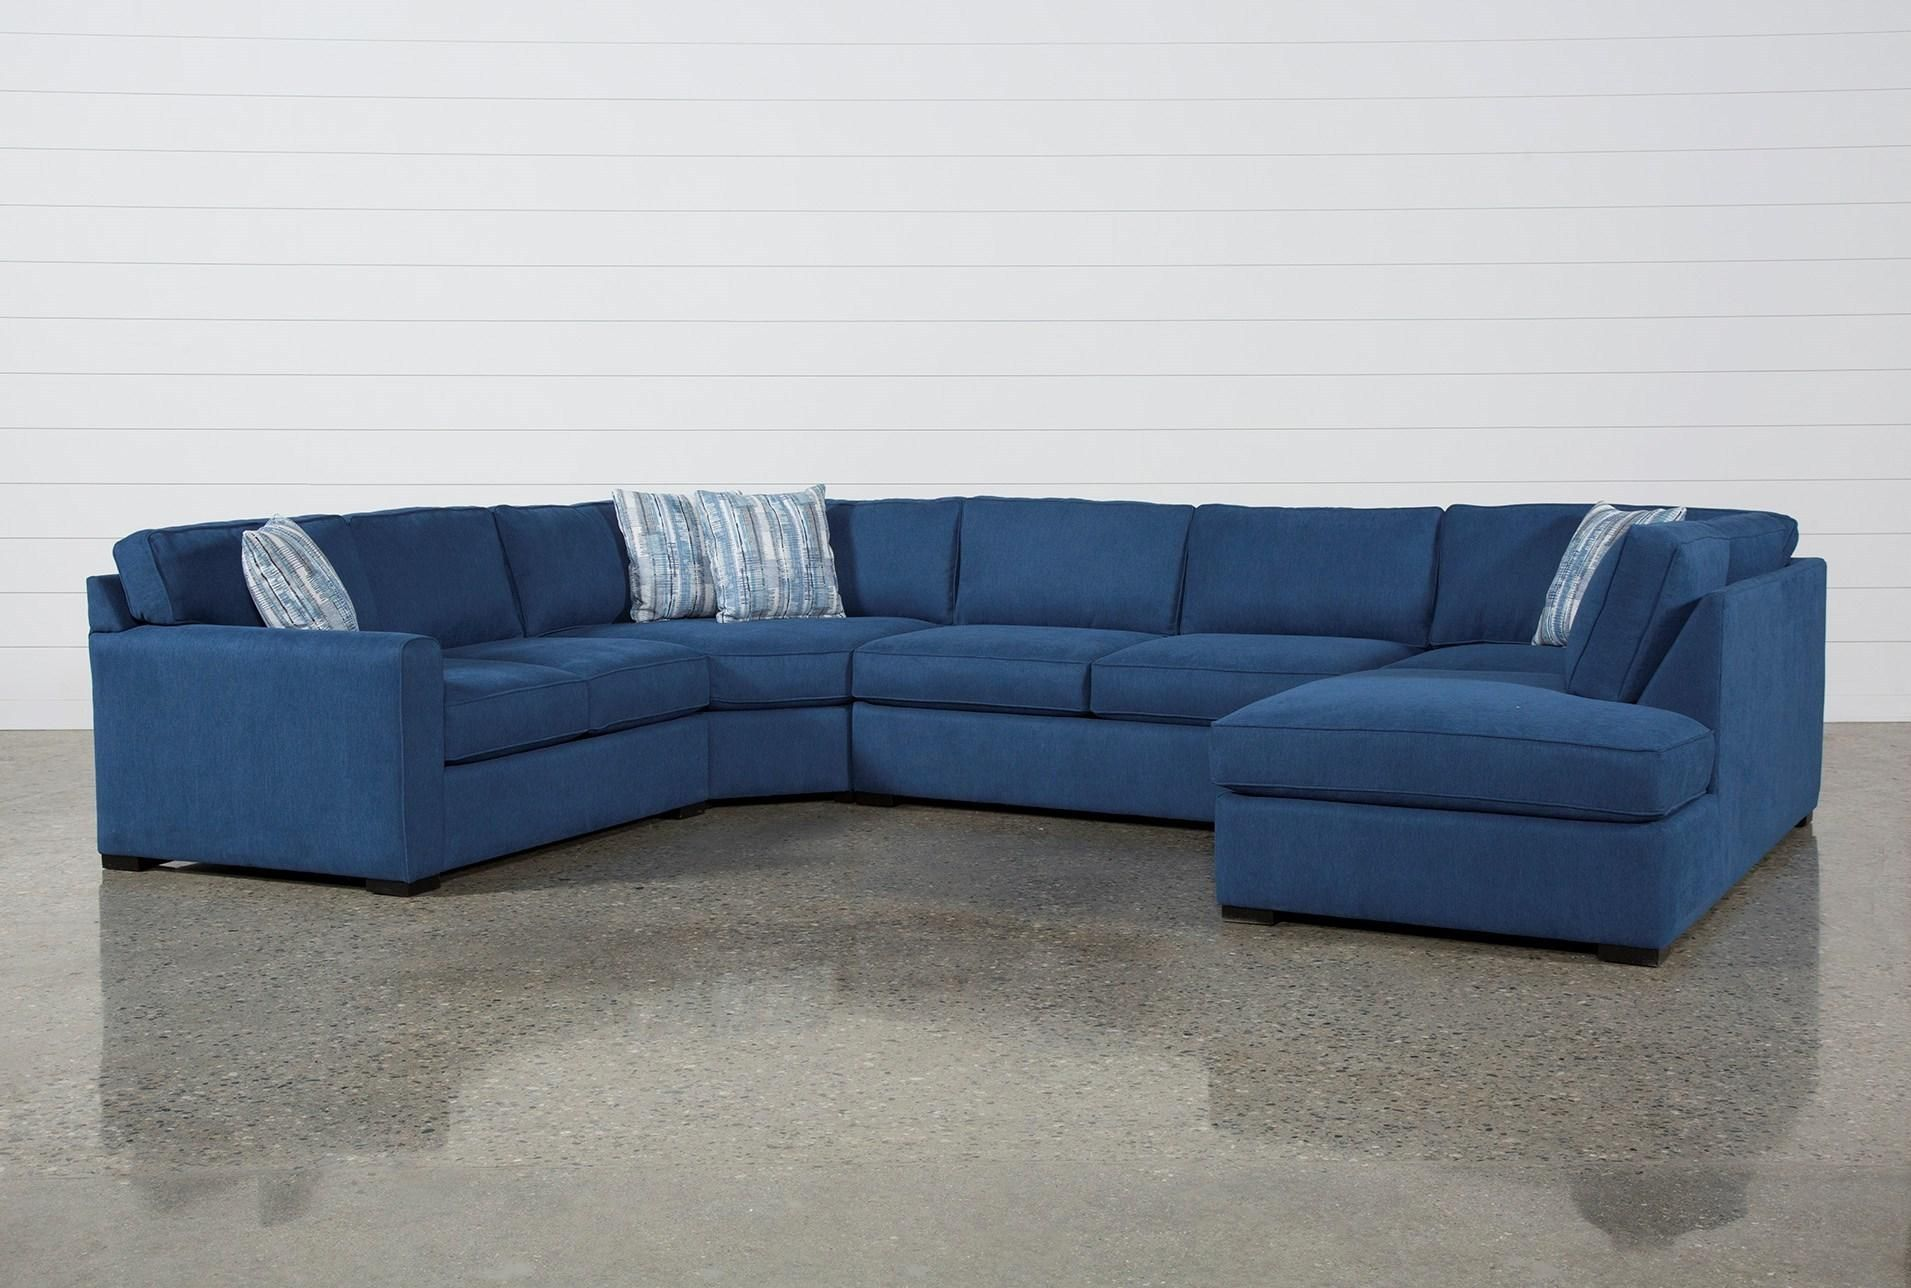 Amazing Cypress Grande 4 Piece Sectional Home Sleeper Couch Download Free Architecture Designs Terstmadebymaigaardcom